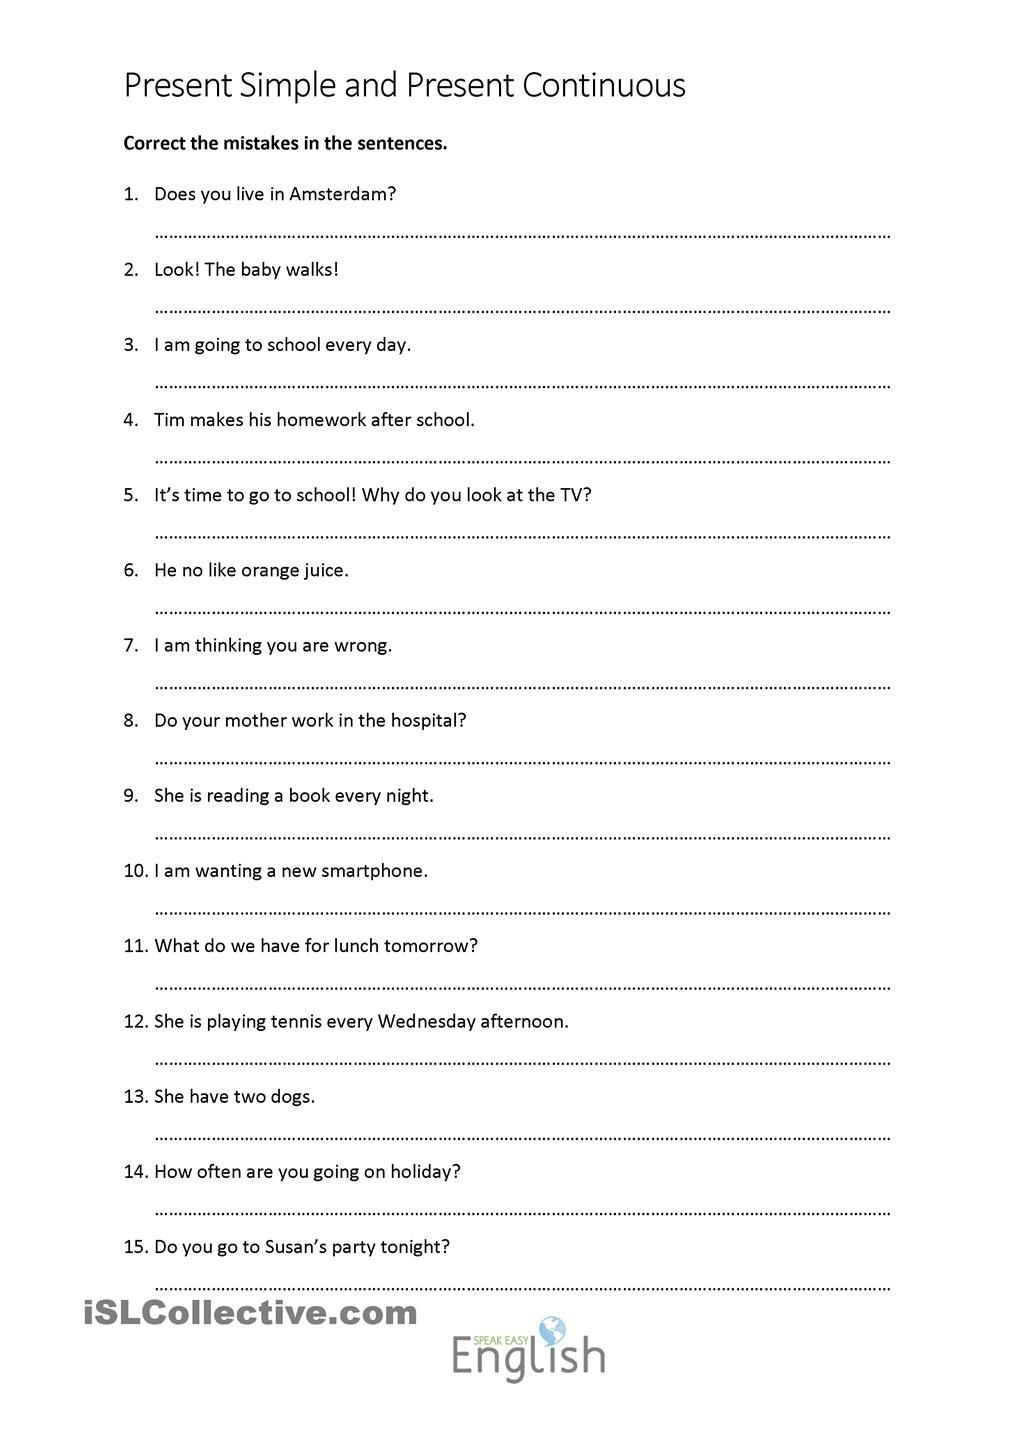 Present Simple/continuous Error Correction With Answers | Teaching - Free Printable Sentence Correction Worksheets